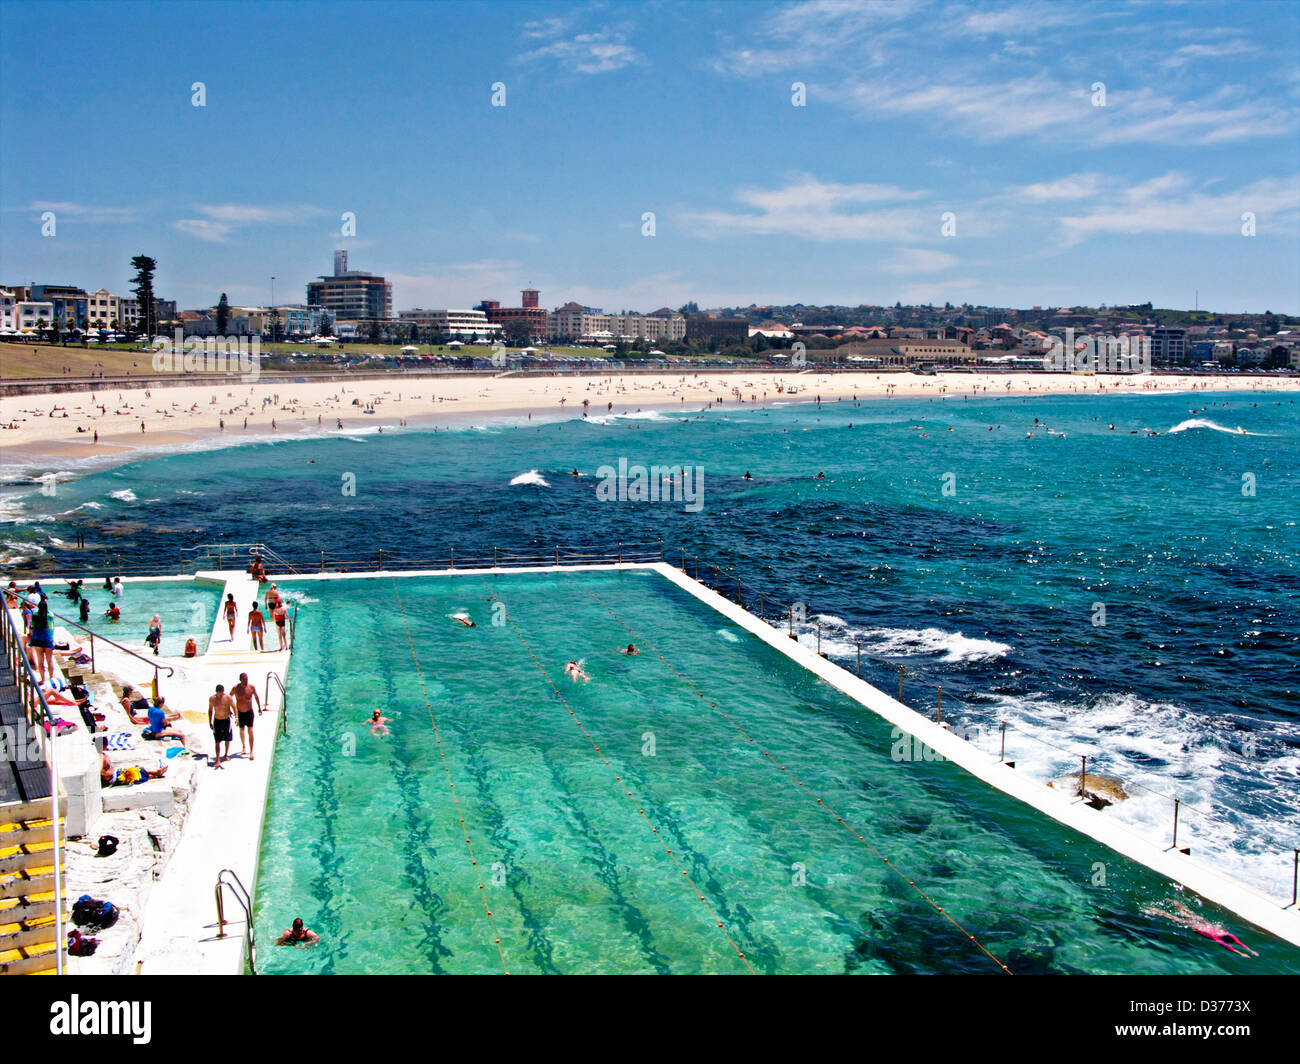 Bondi Icebergs Sea Pool Stock Photos & Bondi Icebergs Sea Pool Stock ...